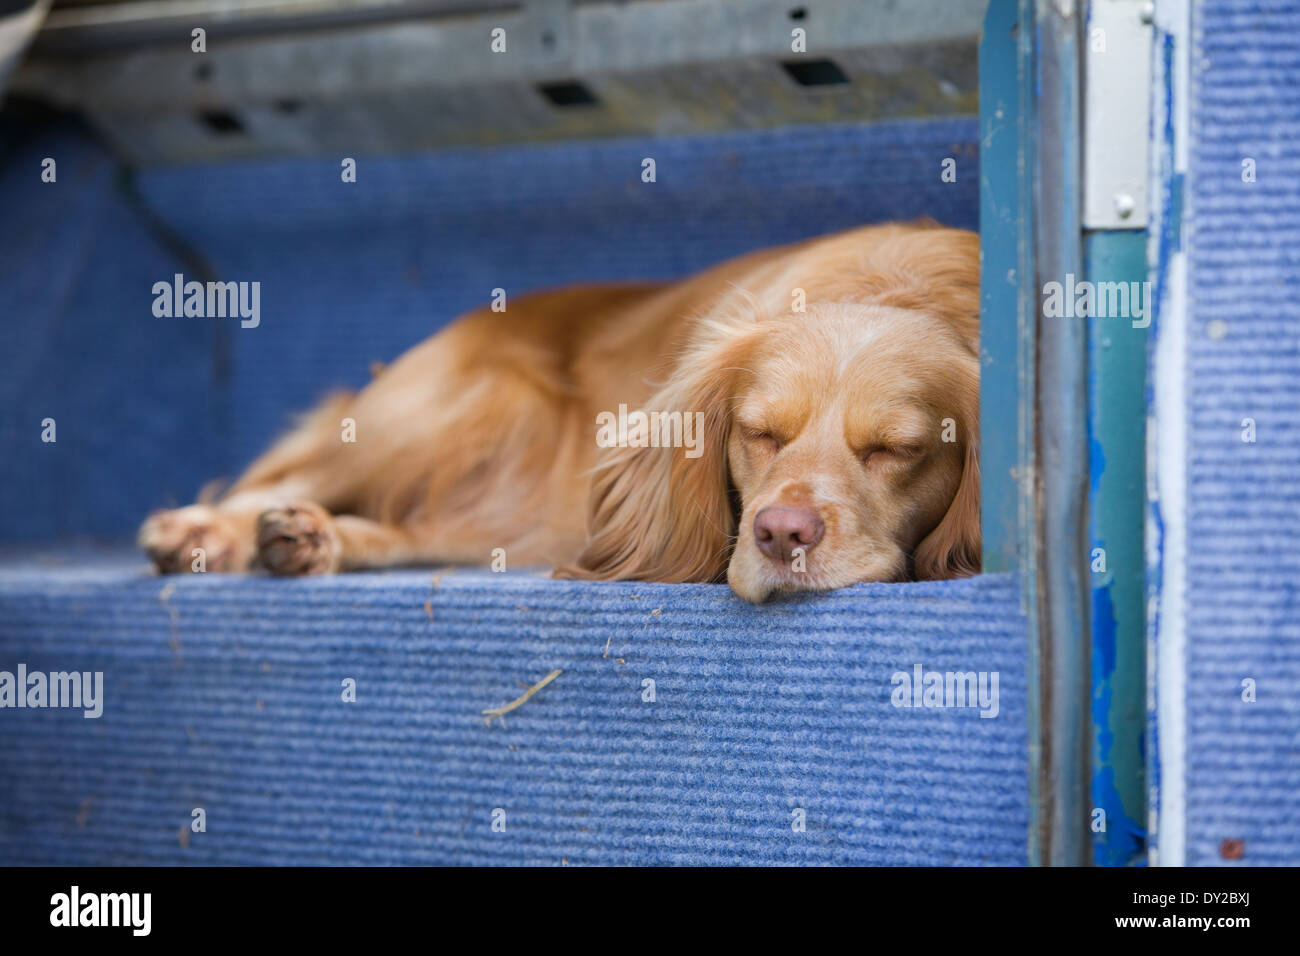 A golden cocker spaniel working dog sleeping in the back of an old Land Rover vehicle - Stock Image